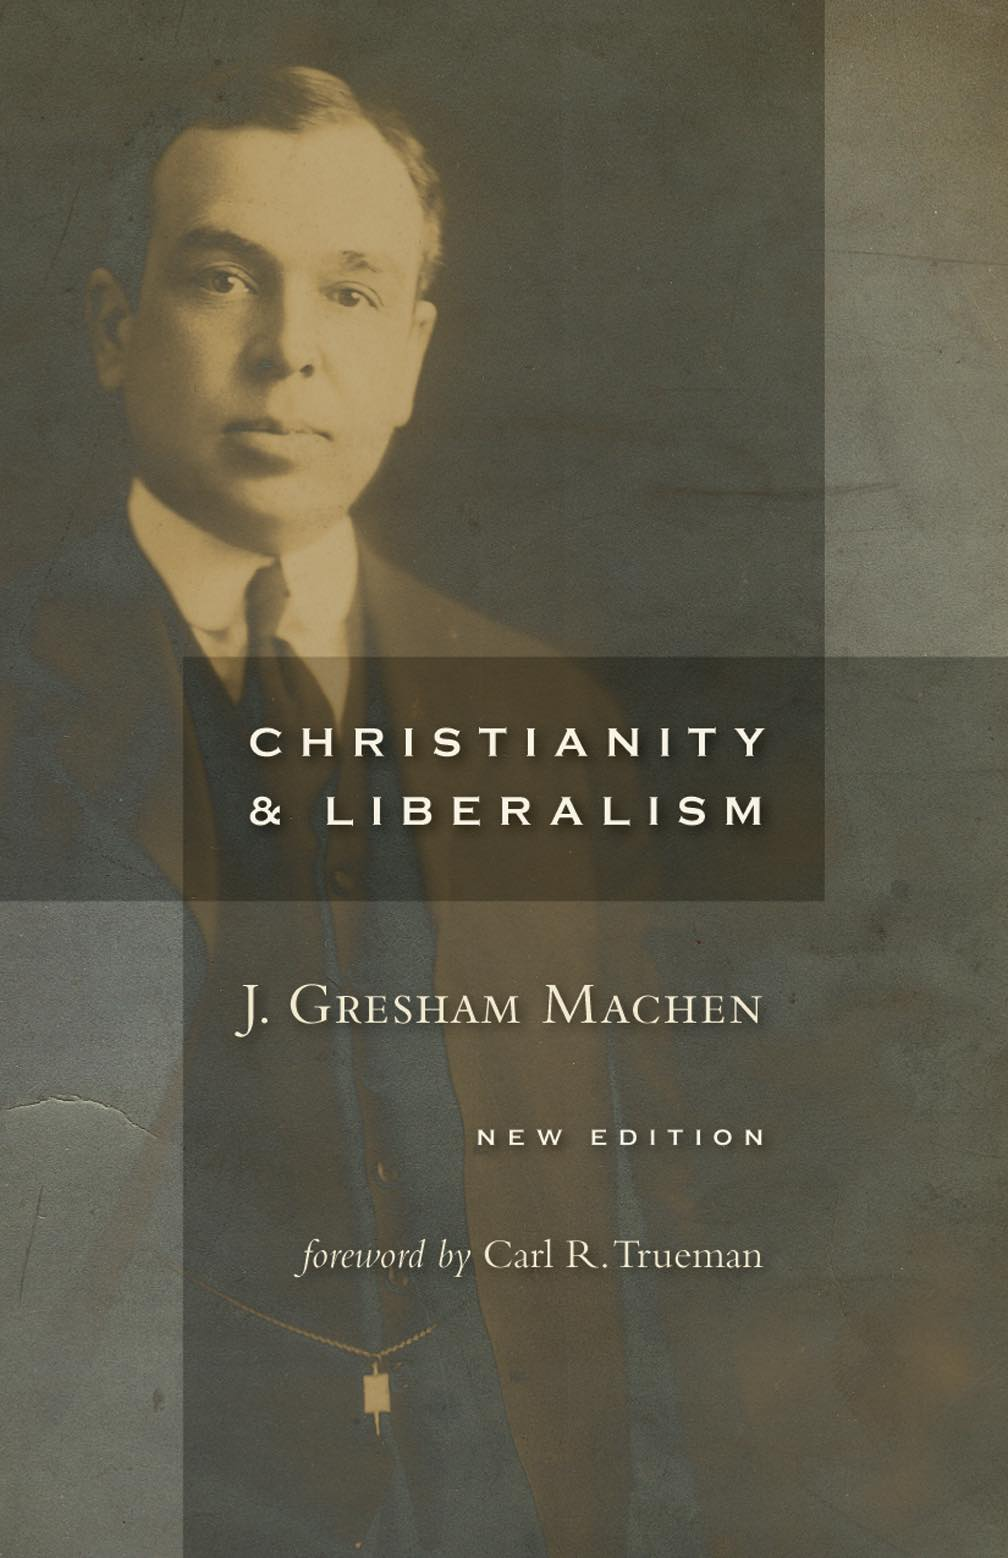 christianity and liberalism by gresham machen machen Christianity & liberalism by j gresham machen (first published in 1923) 2 chapter 1 introduction  attempt at reconciling science and christianity modern liberalism may be criticized (1) on the ground that it is un-christian and (2) on the ground that it is unscientific we shall concern ourselves here chiefly.